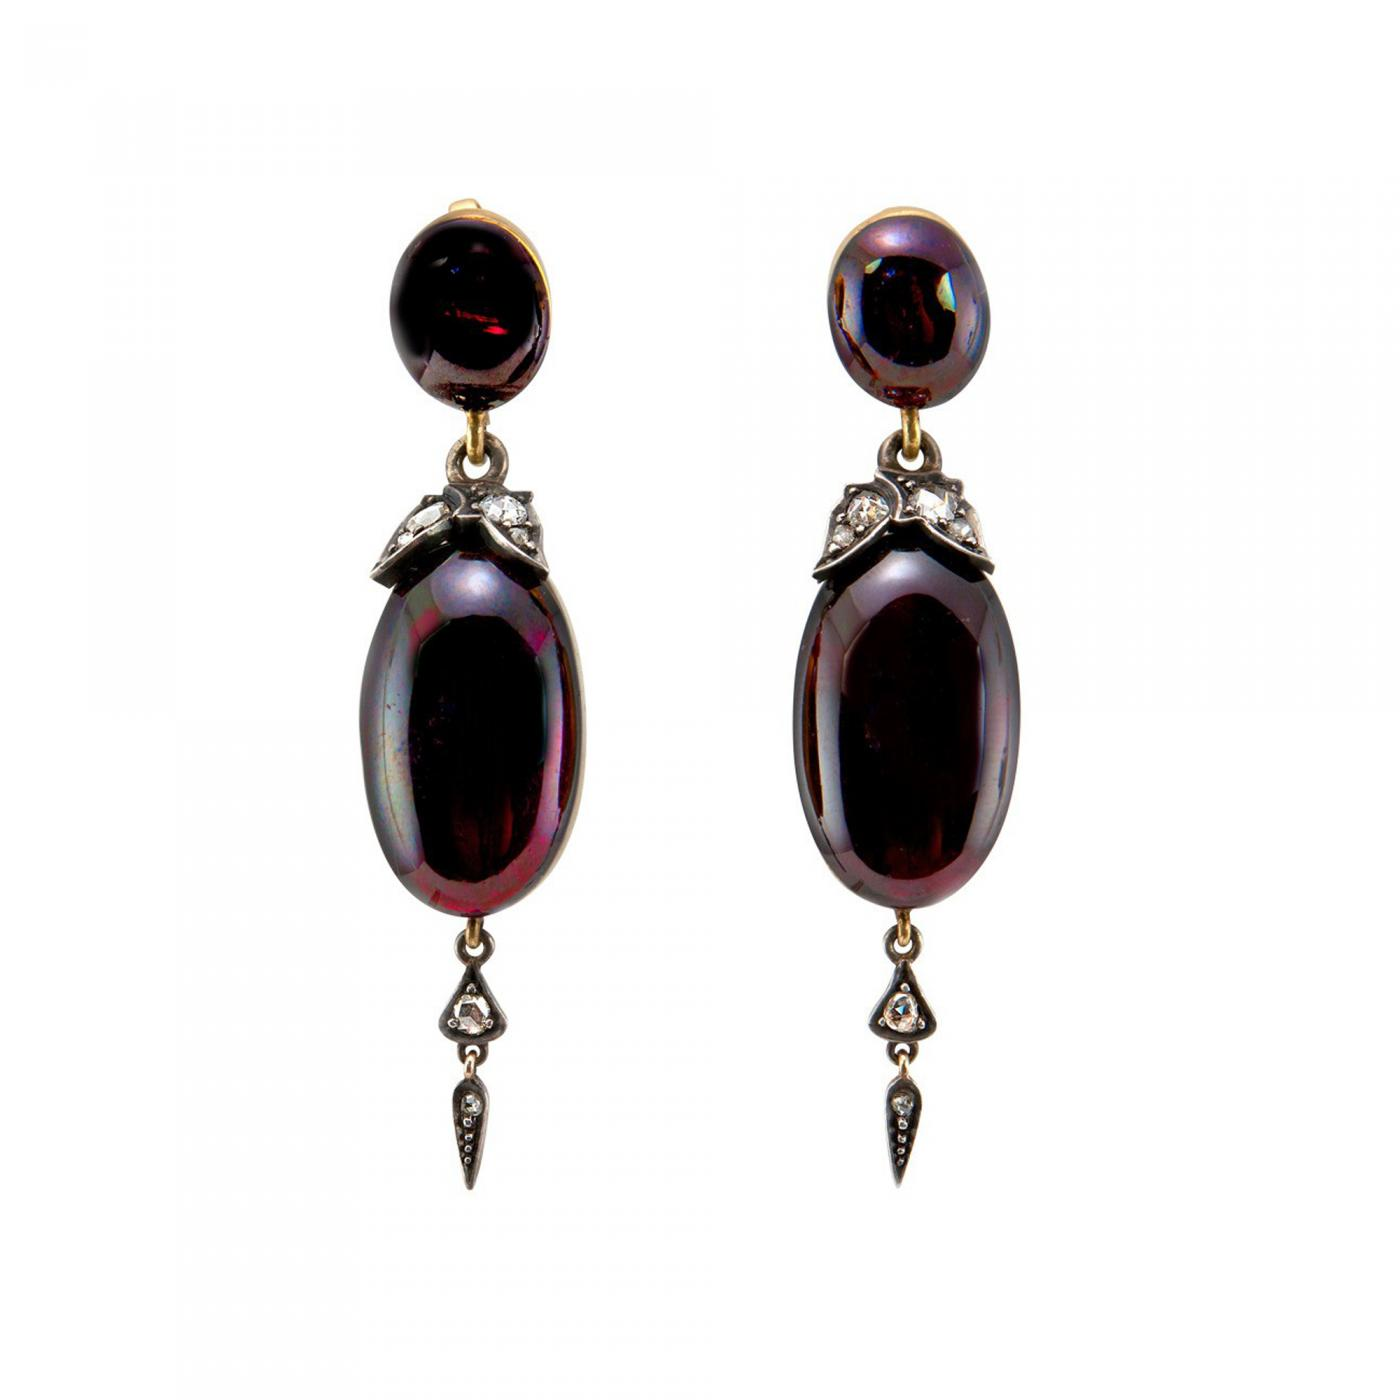 Victorian Garnet Carbuncle and Gold Dangle Earrings Circa 1860s